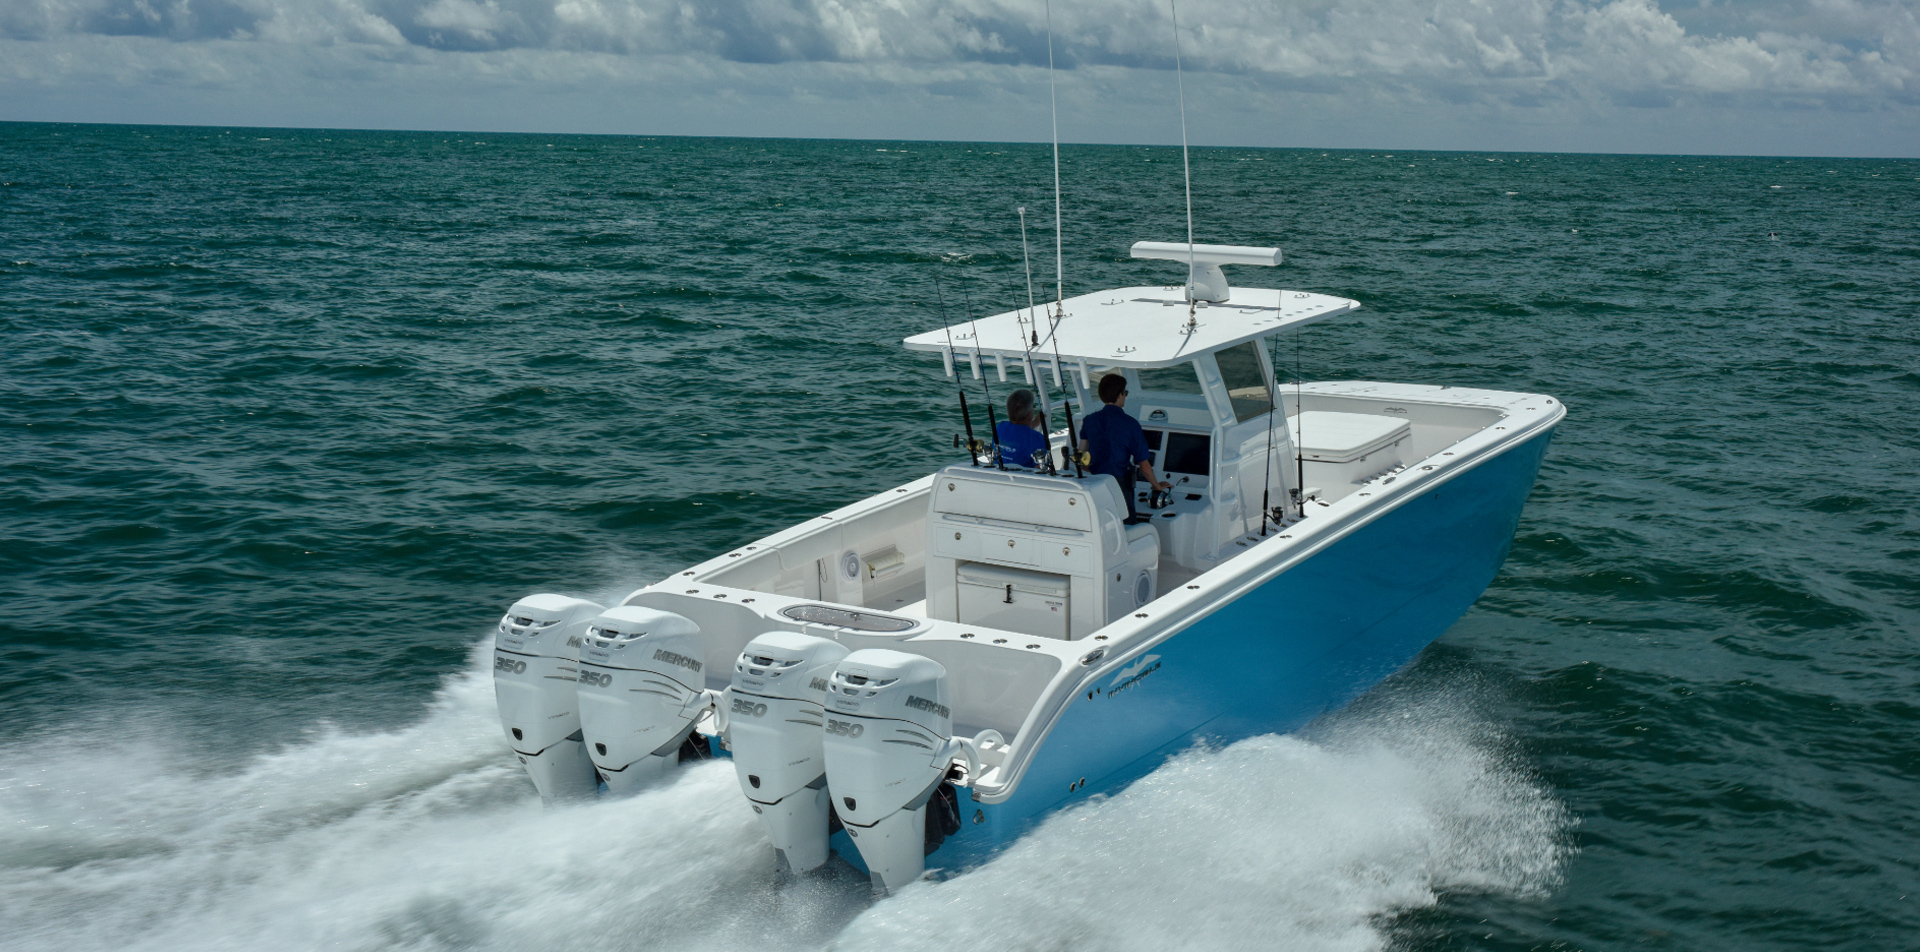 360 degree walk-around fishability on the 37 ft. Catamaran by Invincible Boats.